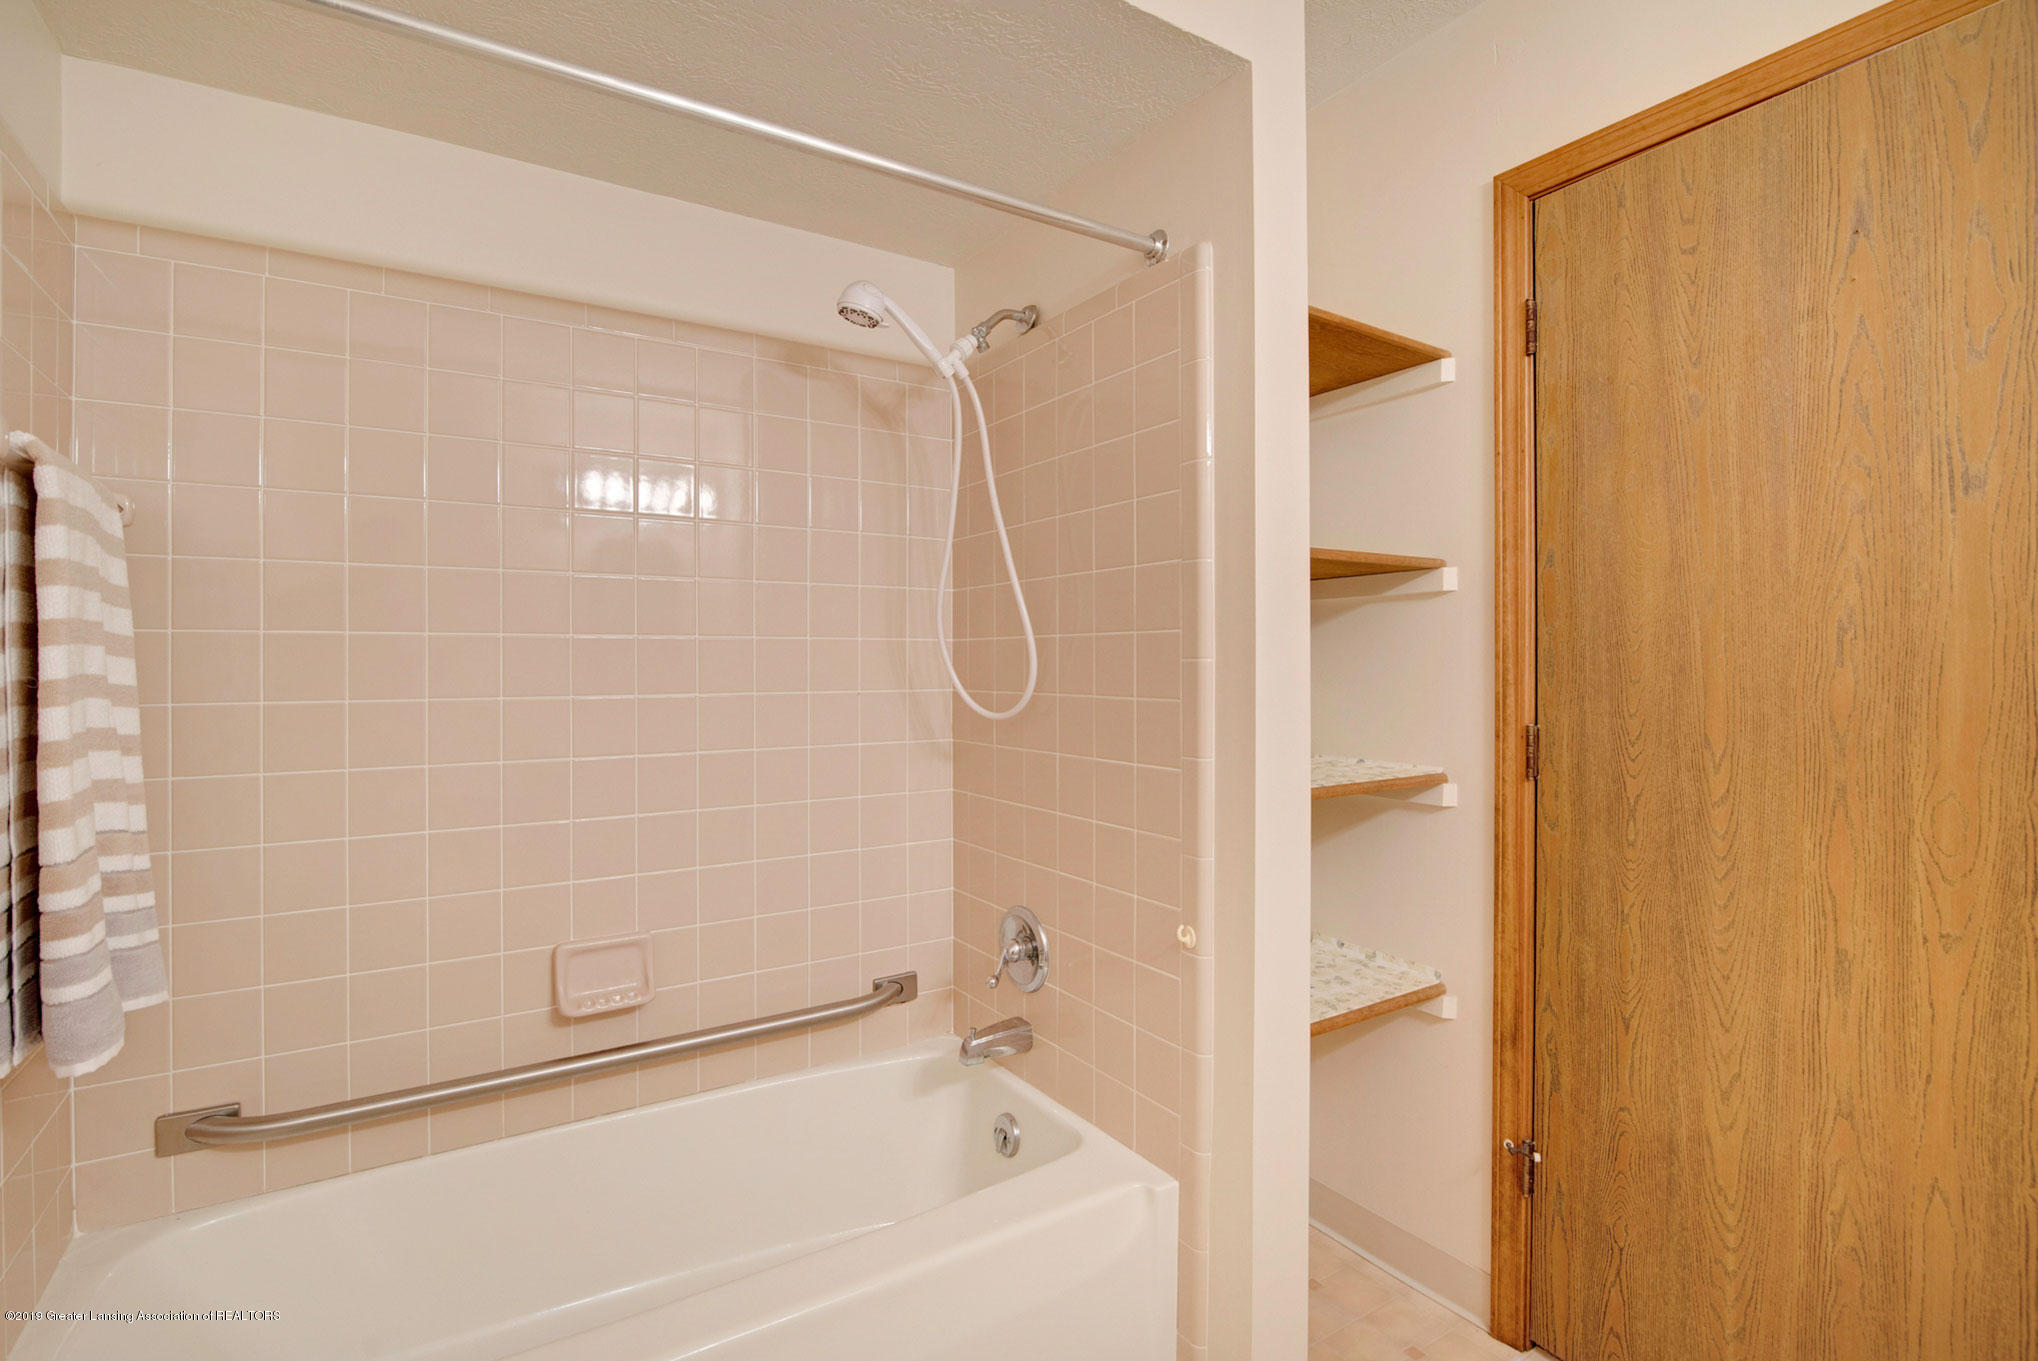 2800 Trudy Ln Unit 21 - Bathroom - 9